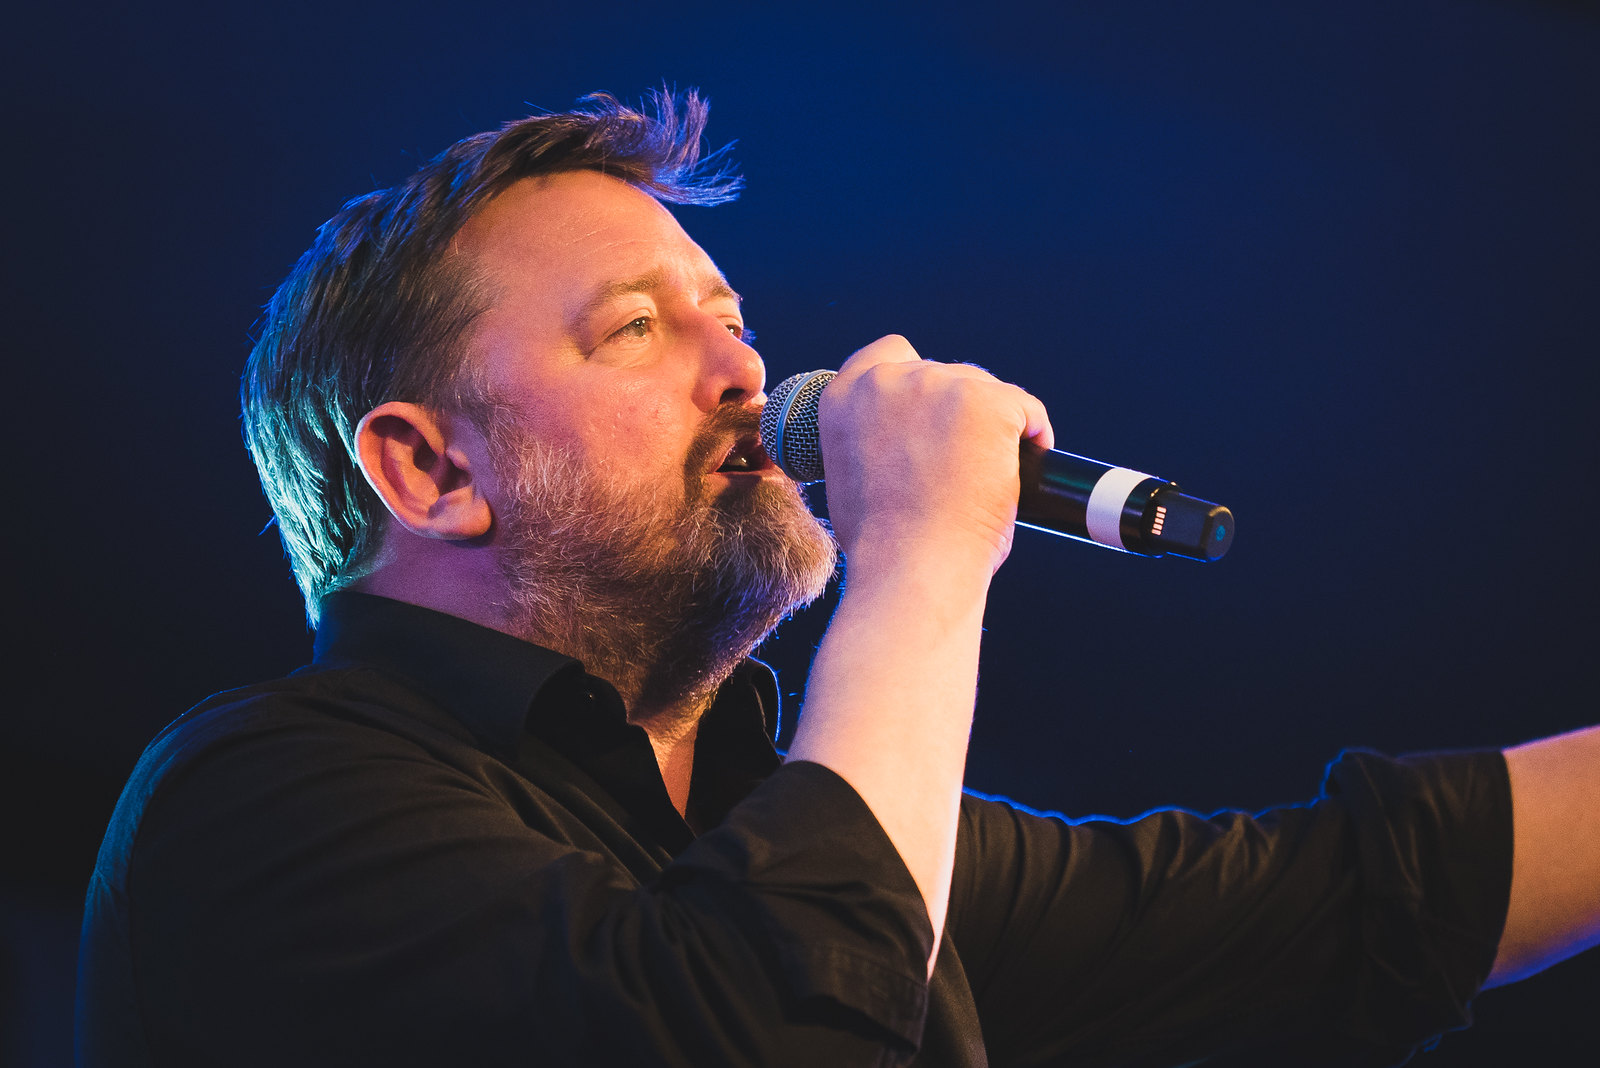 Guy Garvey introducing Rozi Plain